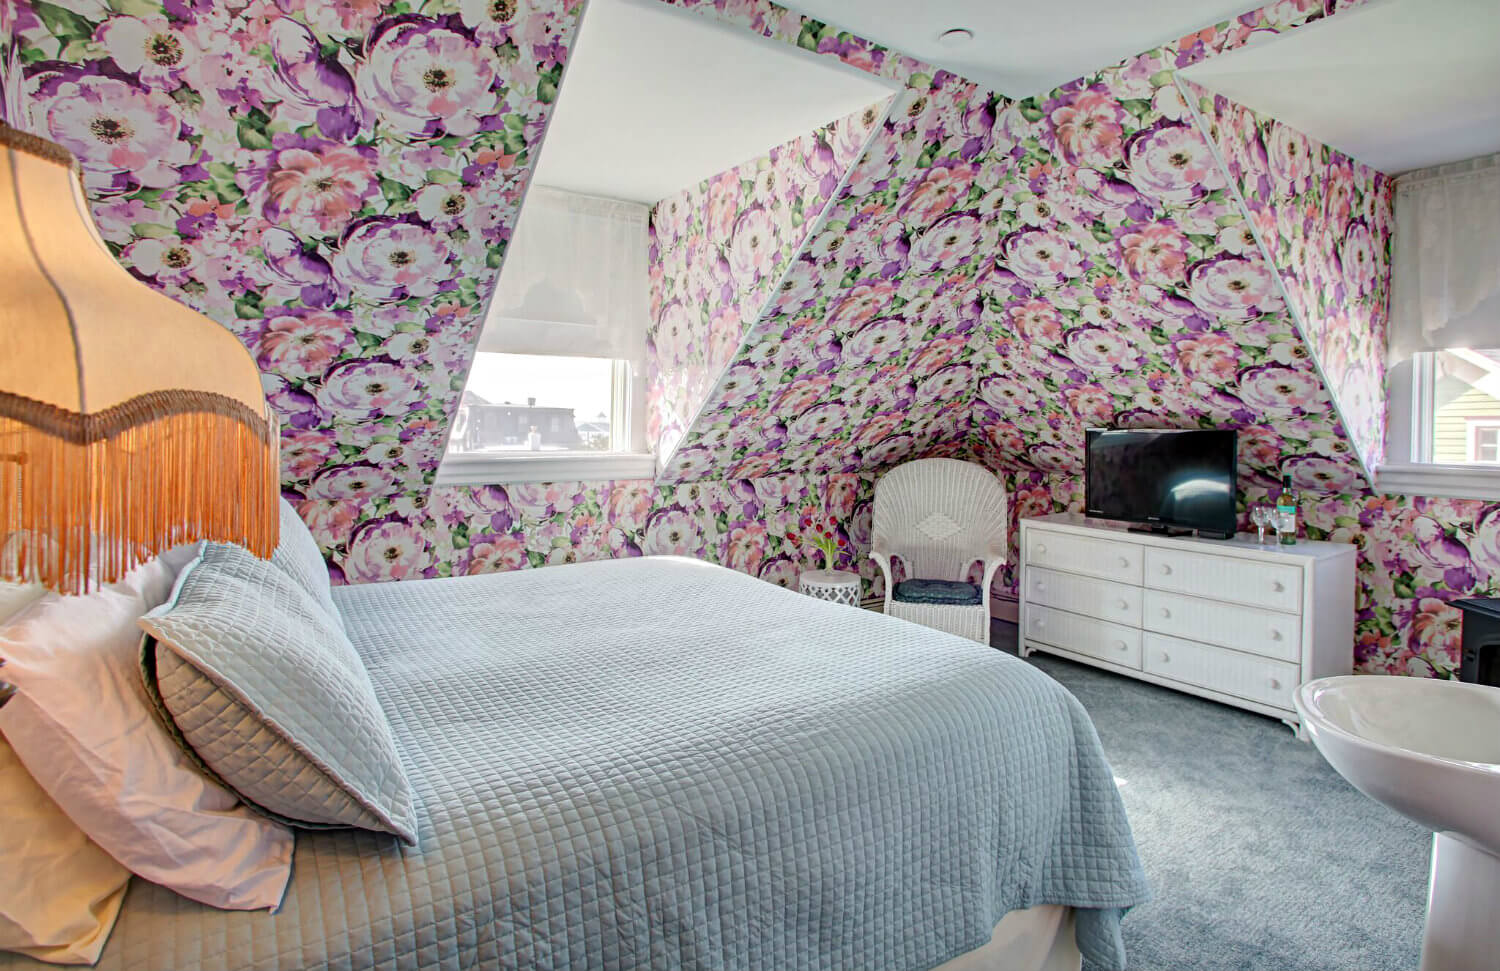 king bed with beige floral quilt and multi-colored hydrangea wallpaper, corner fireplace and TV sitting on white wicker dresser